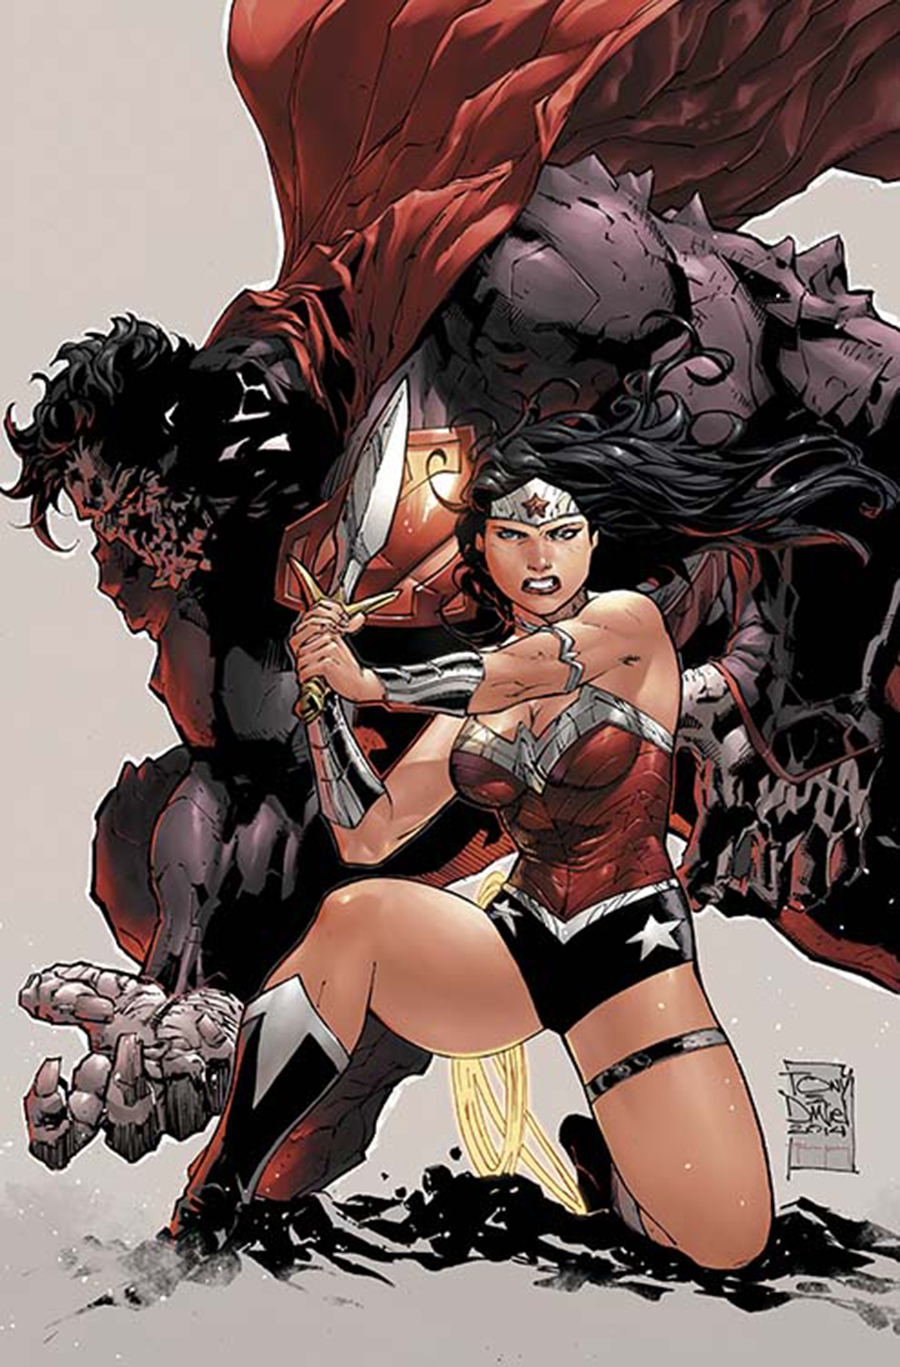 SUPERMAN WONDER WOMAN #8 COMBO PACK